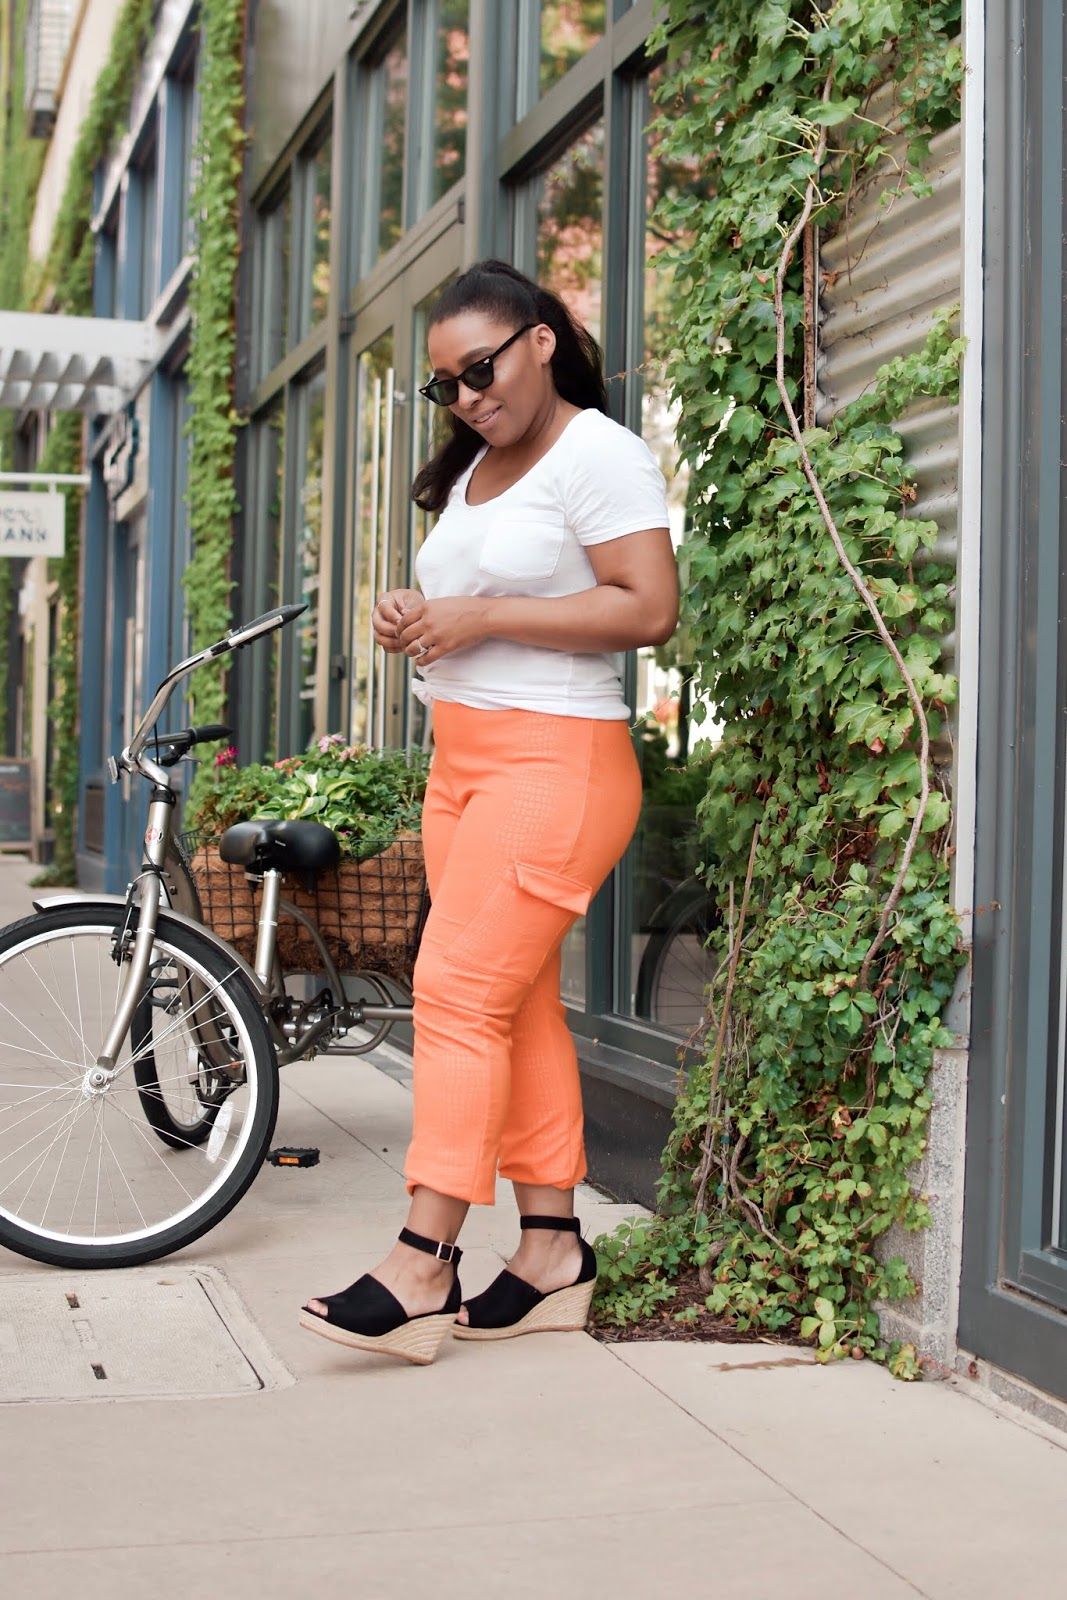 Femme luxe, luxe gal, cargo pants, crocodile print pants, orange pants, summer outfit ideas, animal print pants, wedges